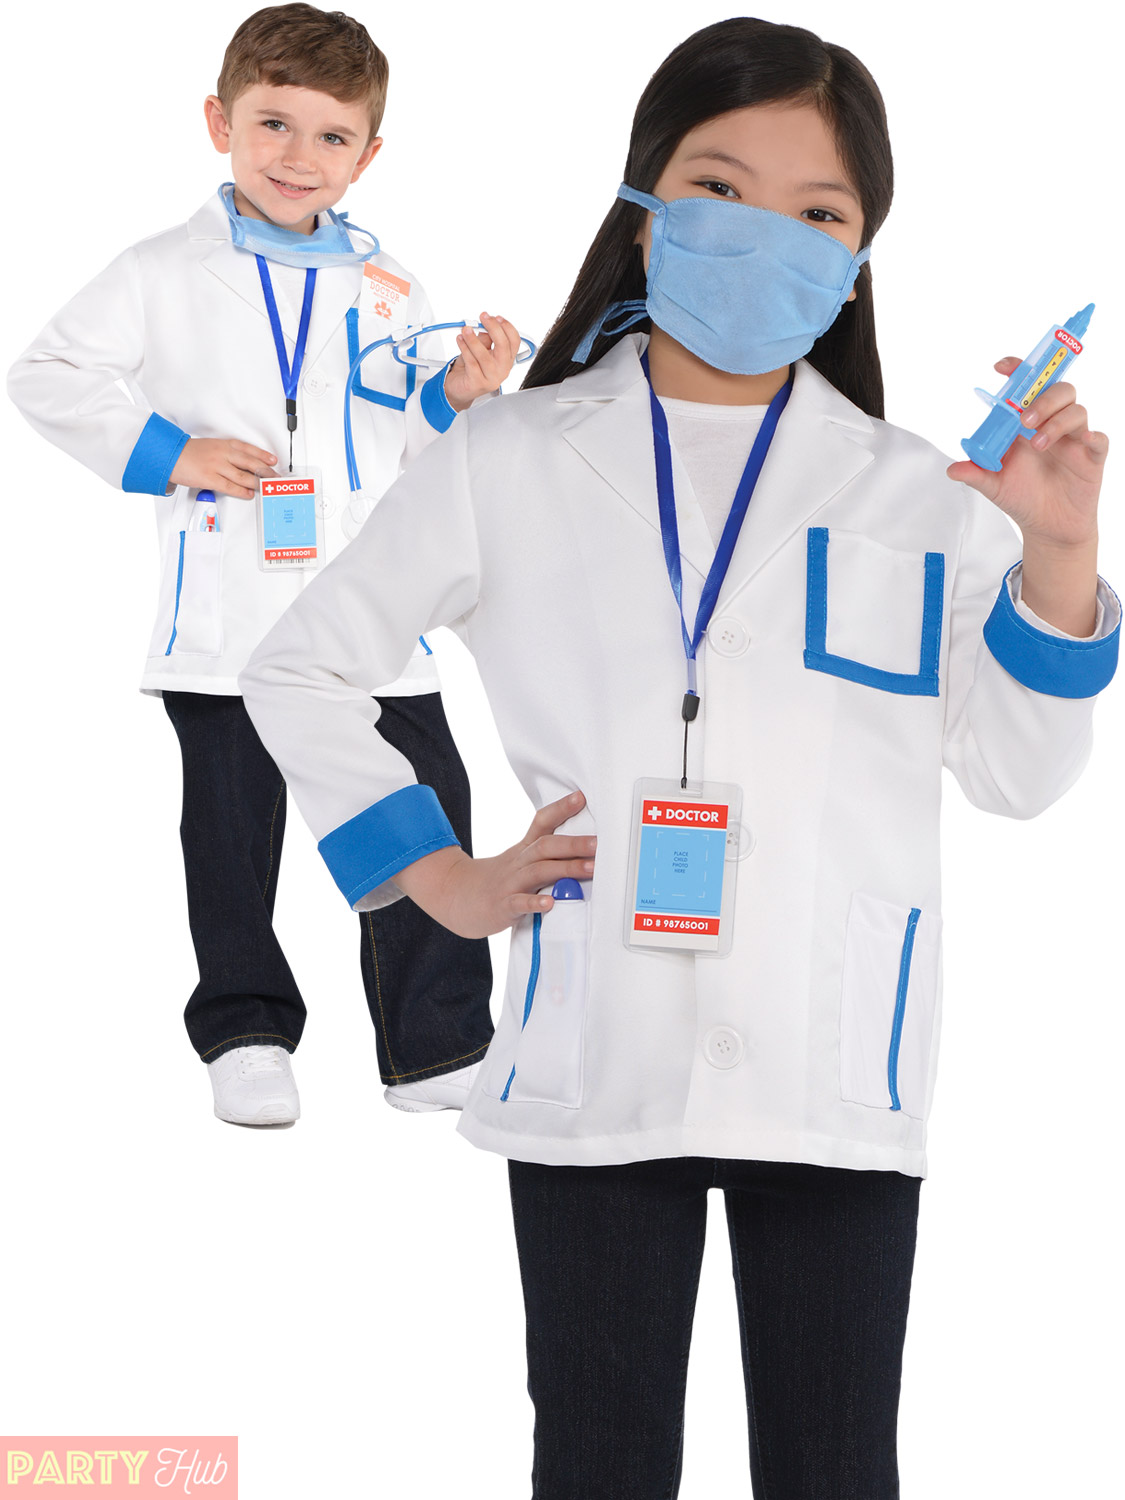 Diy Doctor Costume For Kid - Clublifeglobal.com